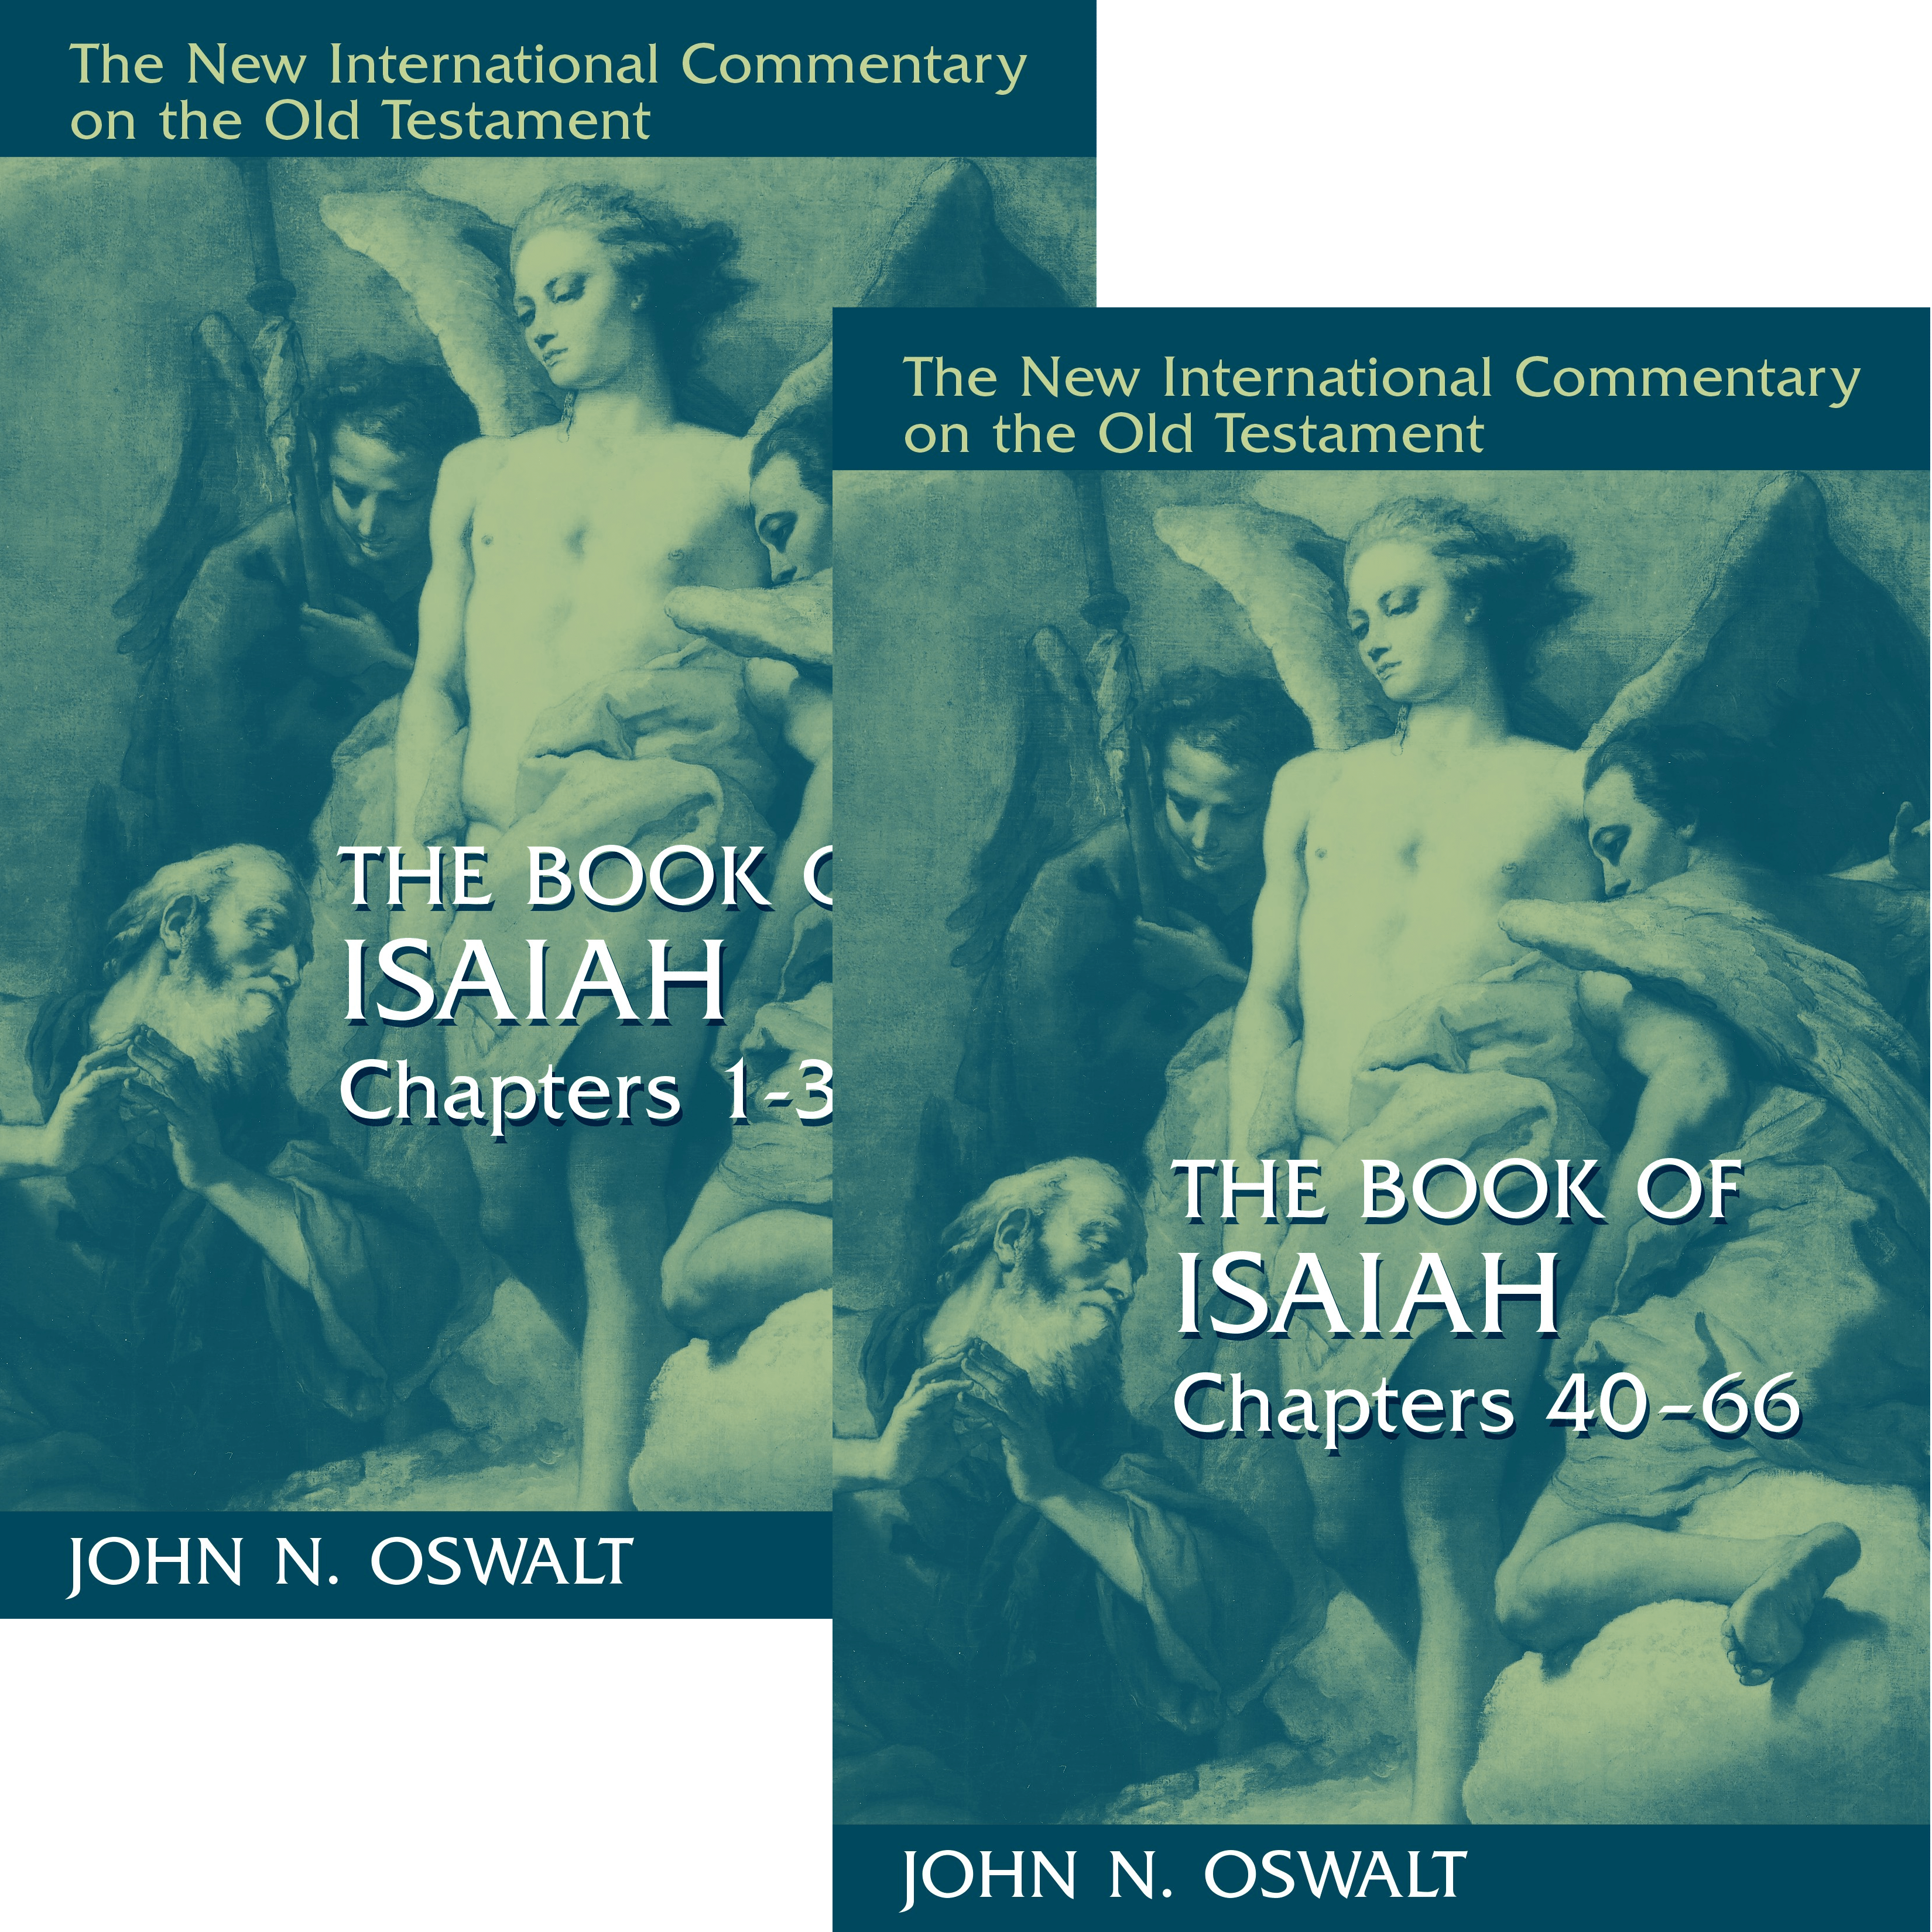 The Book of Isaiah, 2 vols. (New International Commentary on the Old Testament | NICOT)